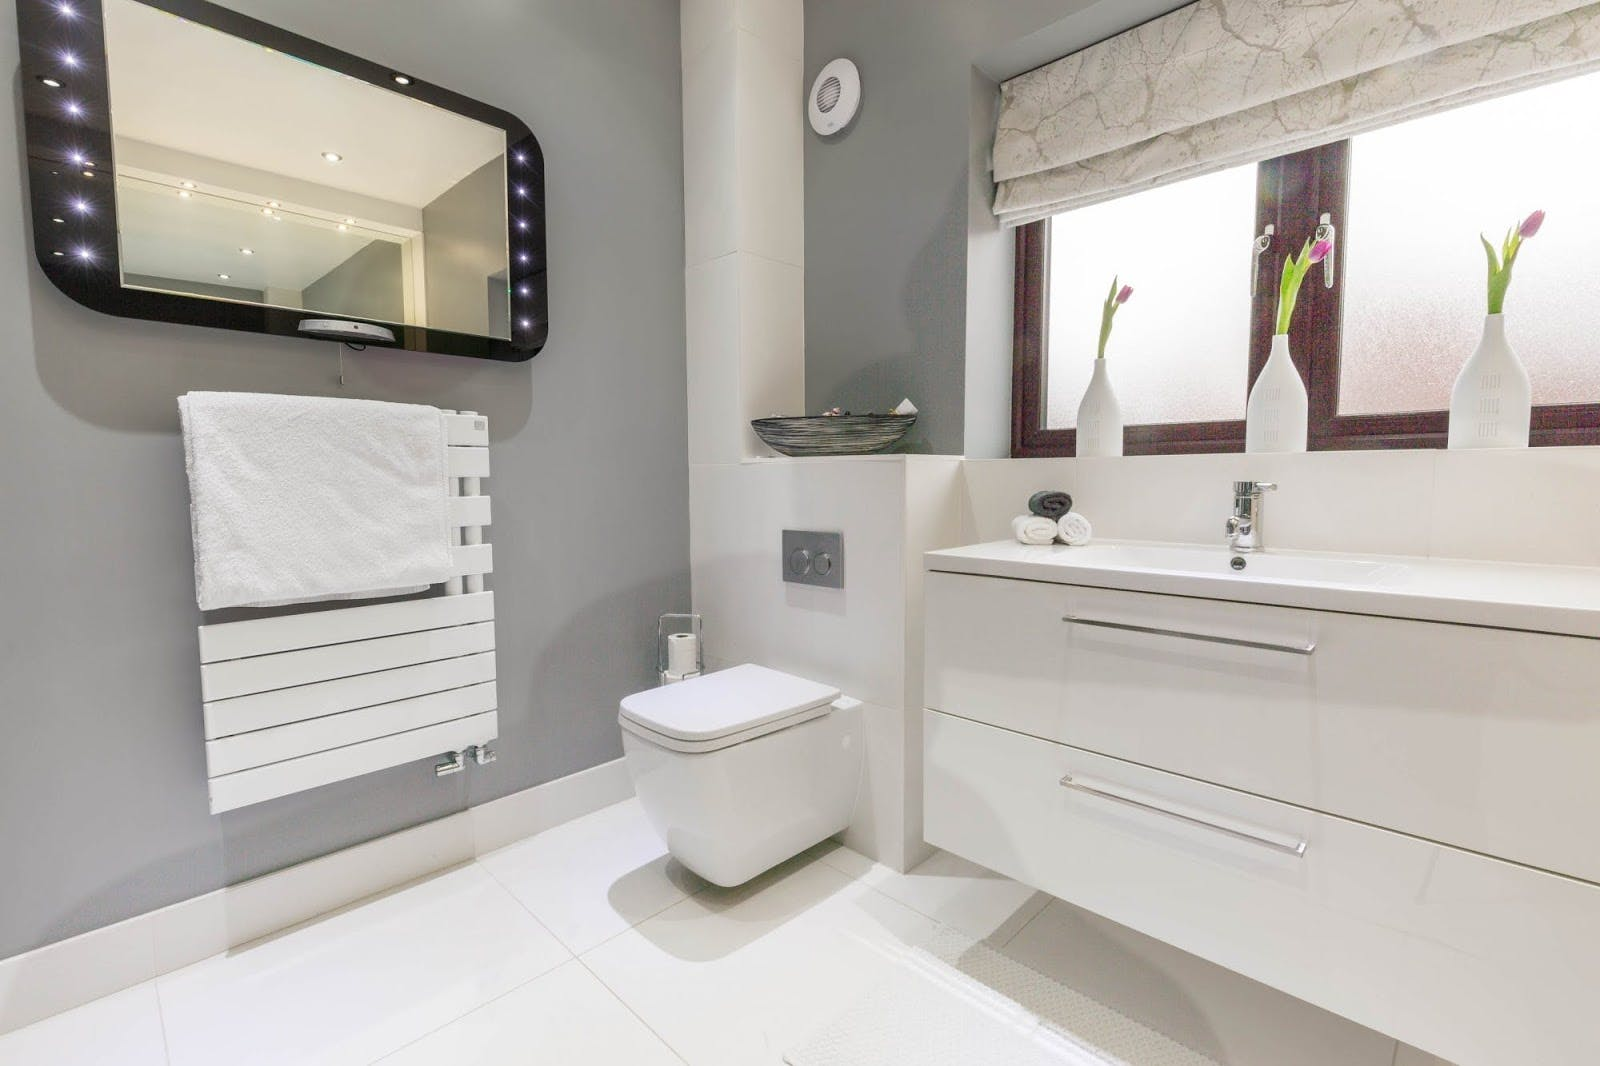 5 Ways to Use Lighting Effectively in Your Bathroom